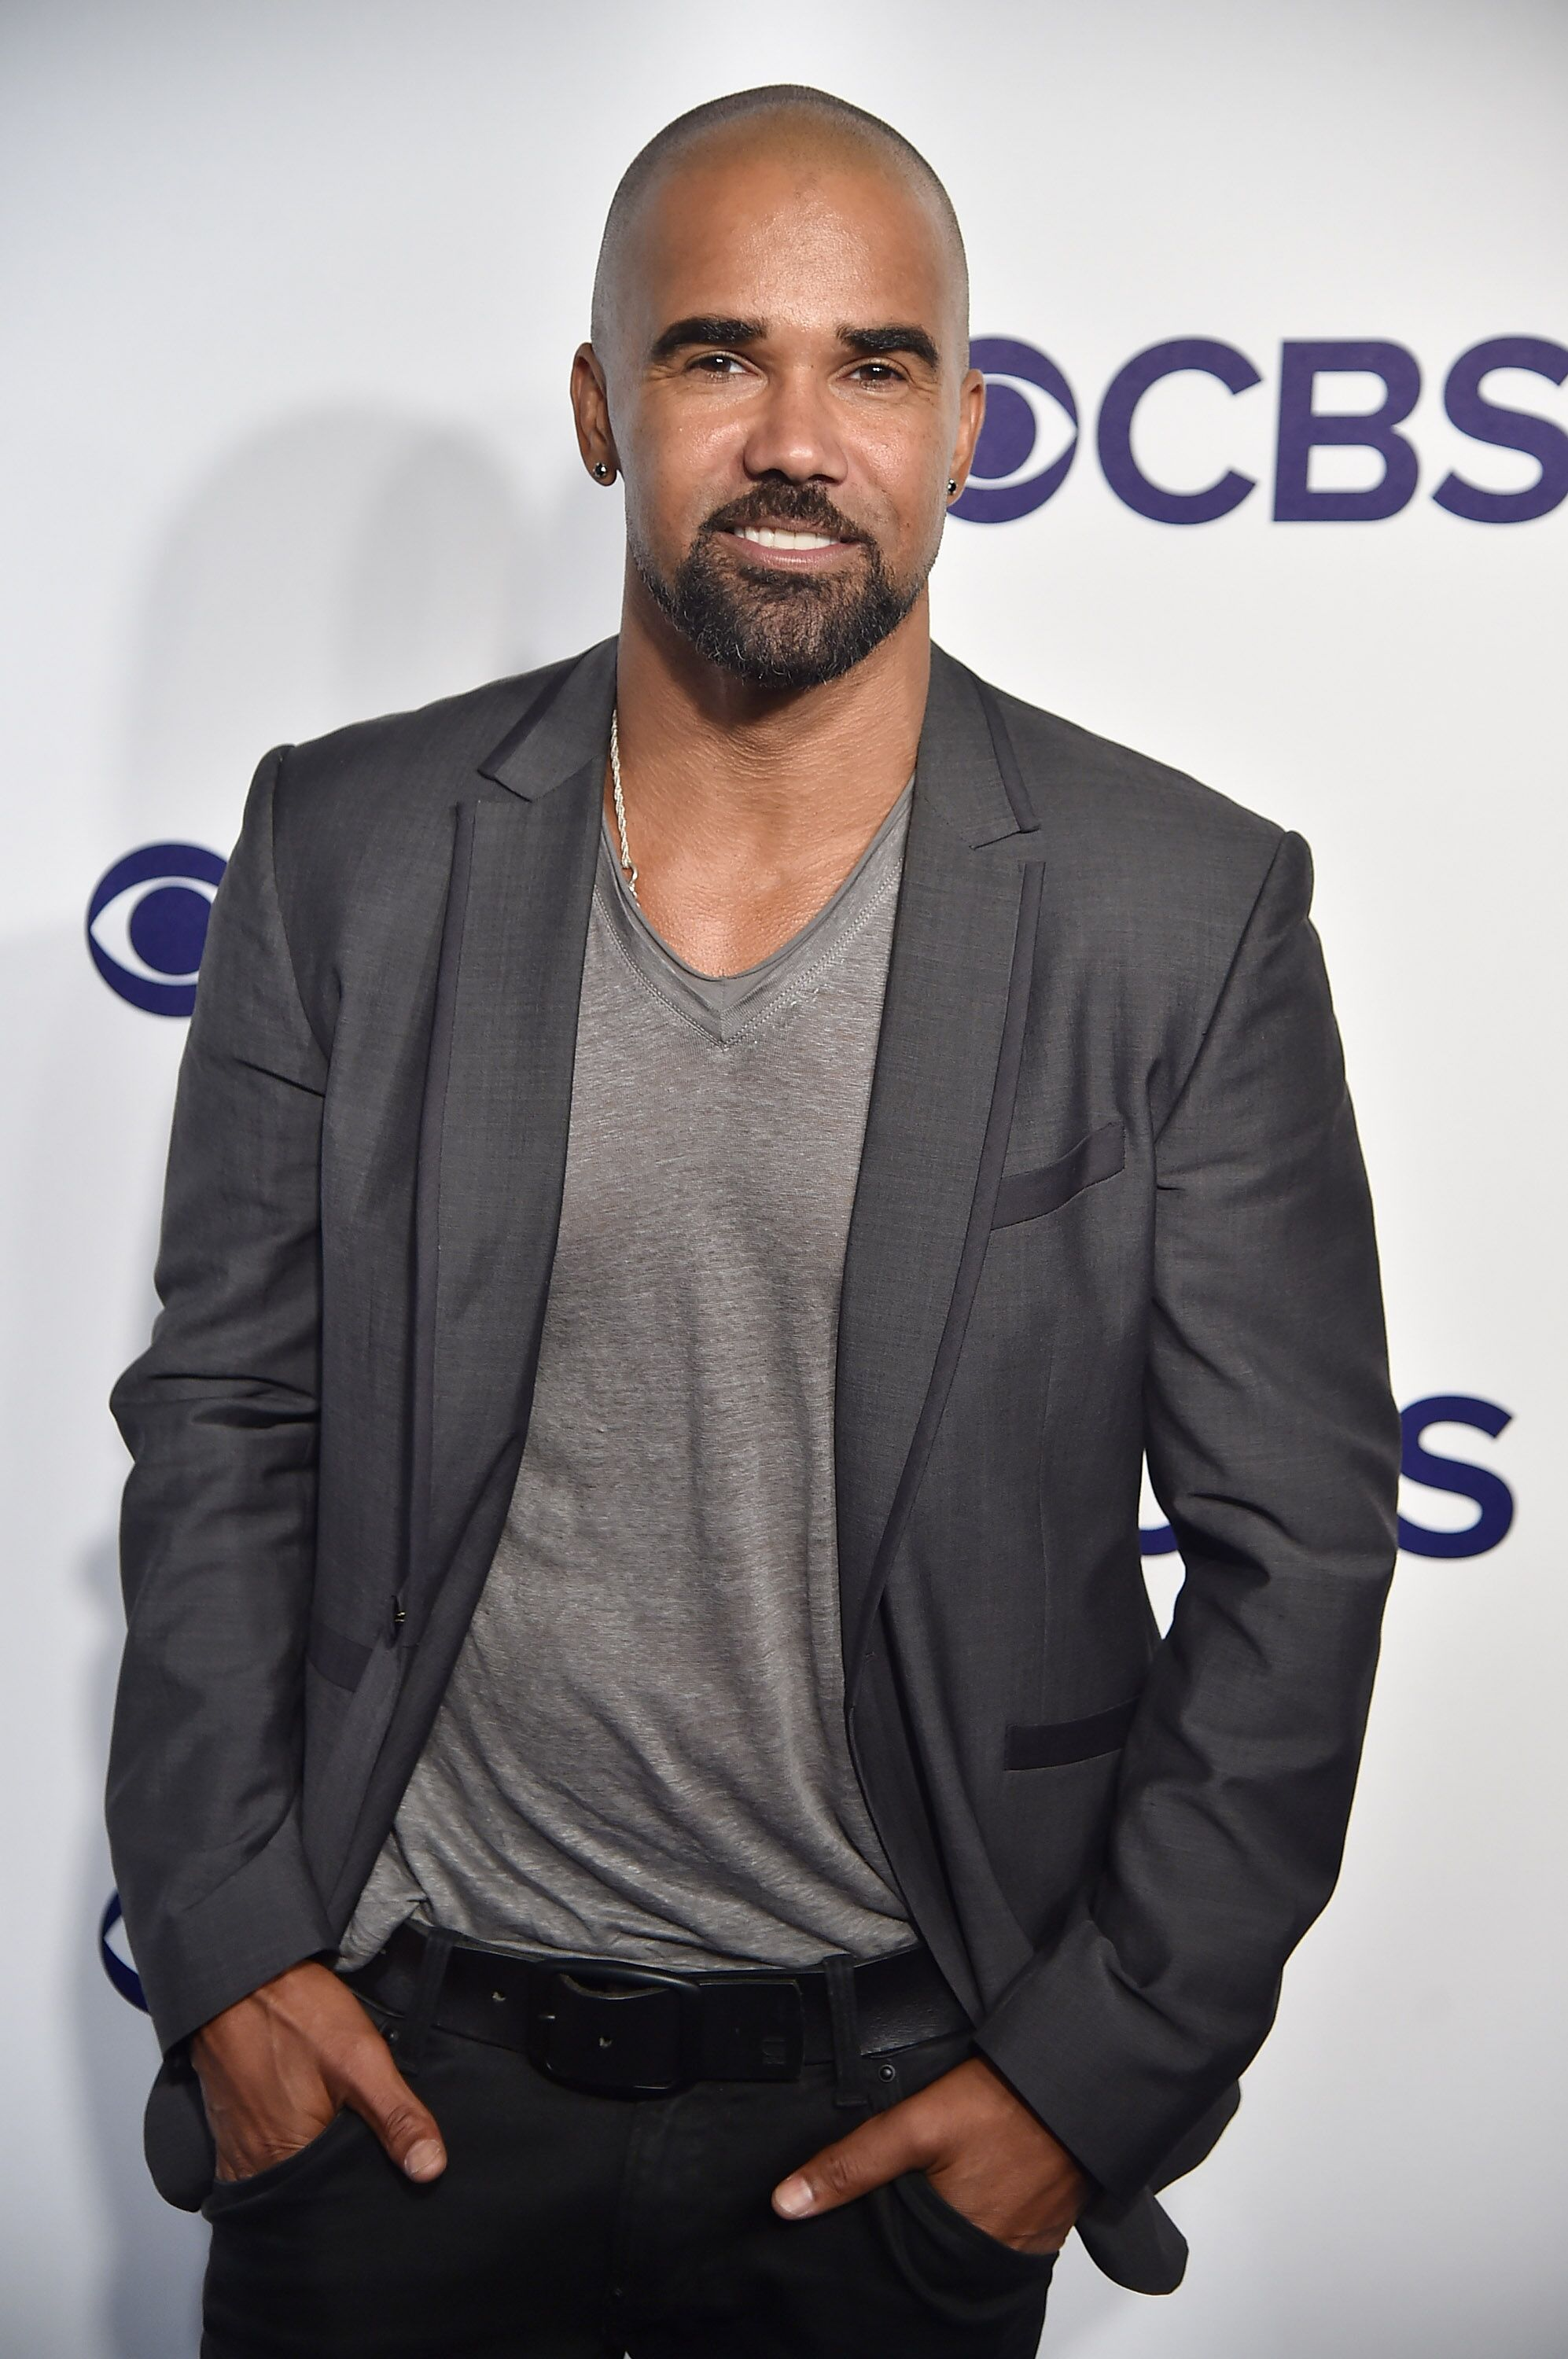 Shemar Moore at CBS Upfront 2017 | Getty Images